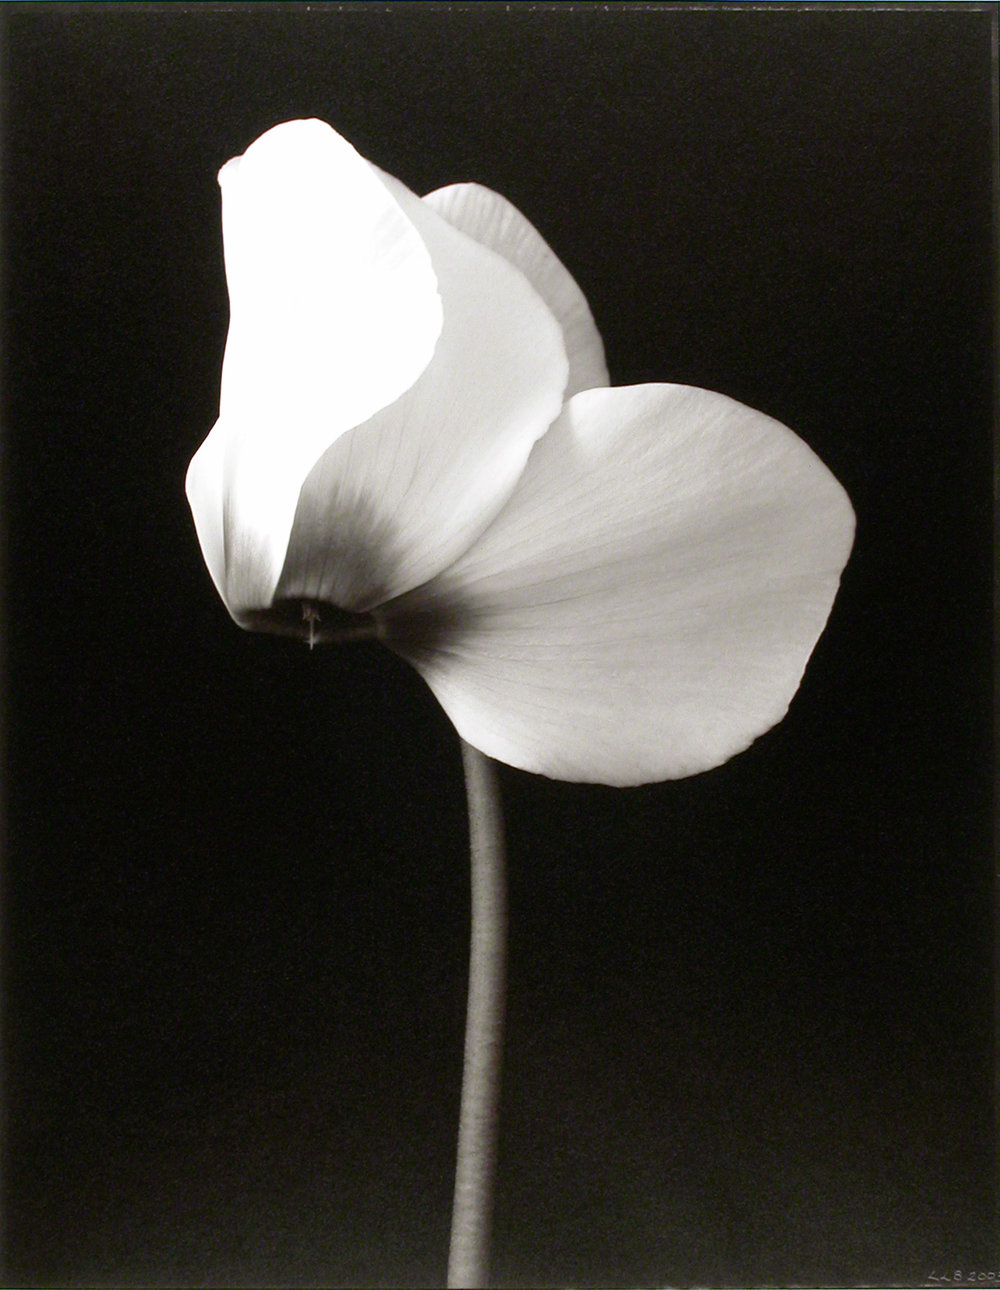 Cyclamen persicum , (Cyclamen bloom), 2003